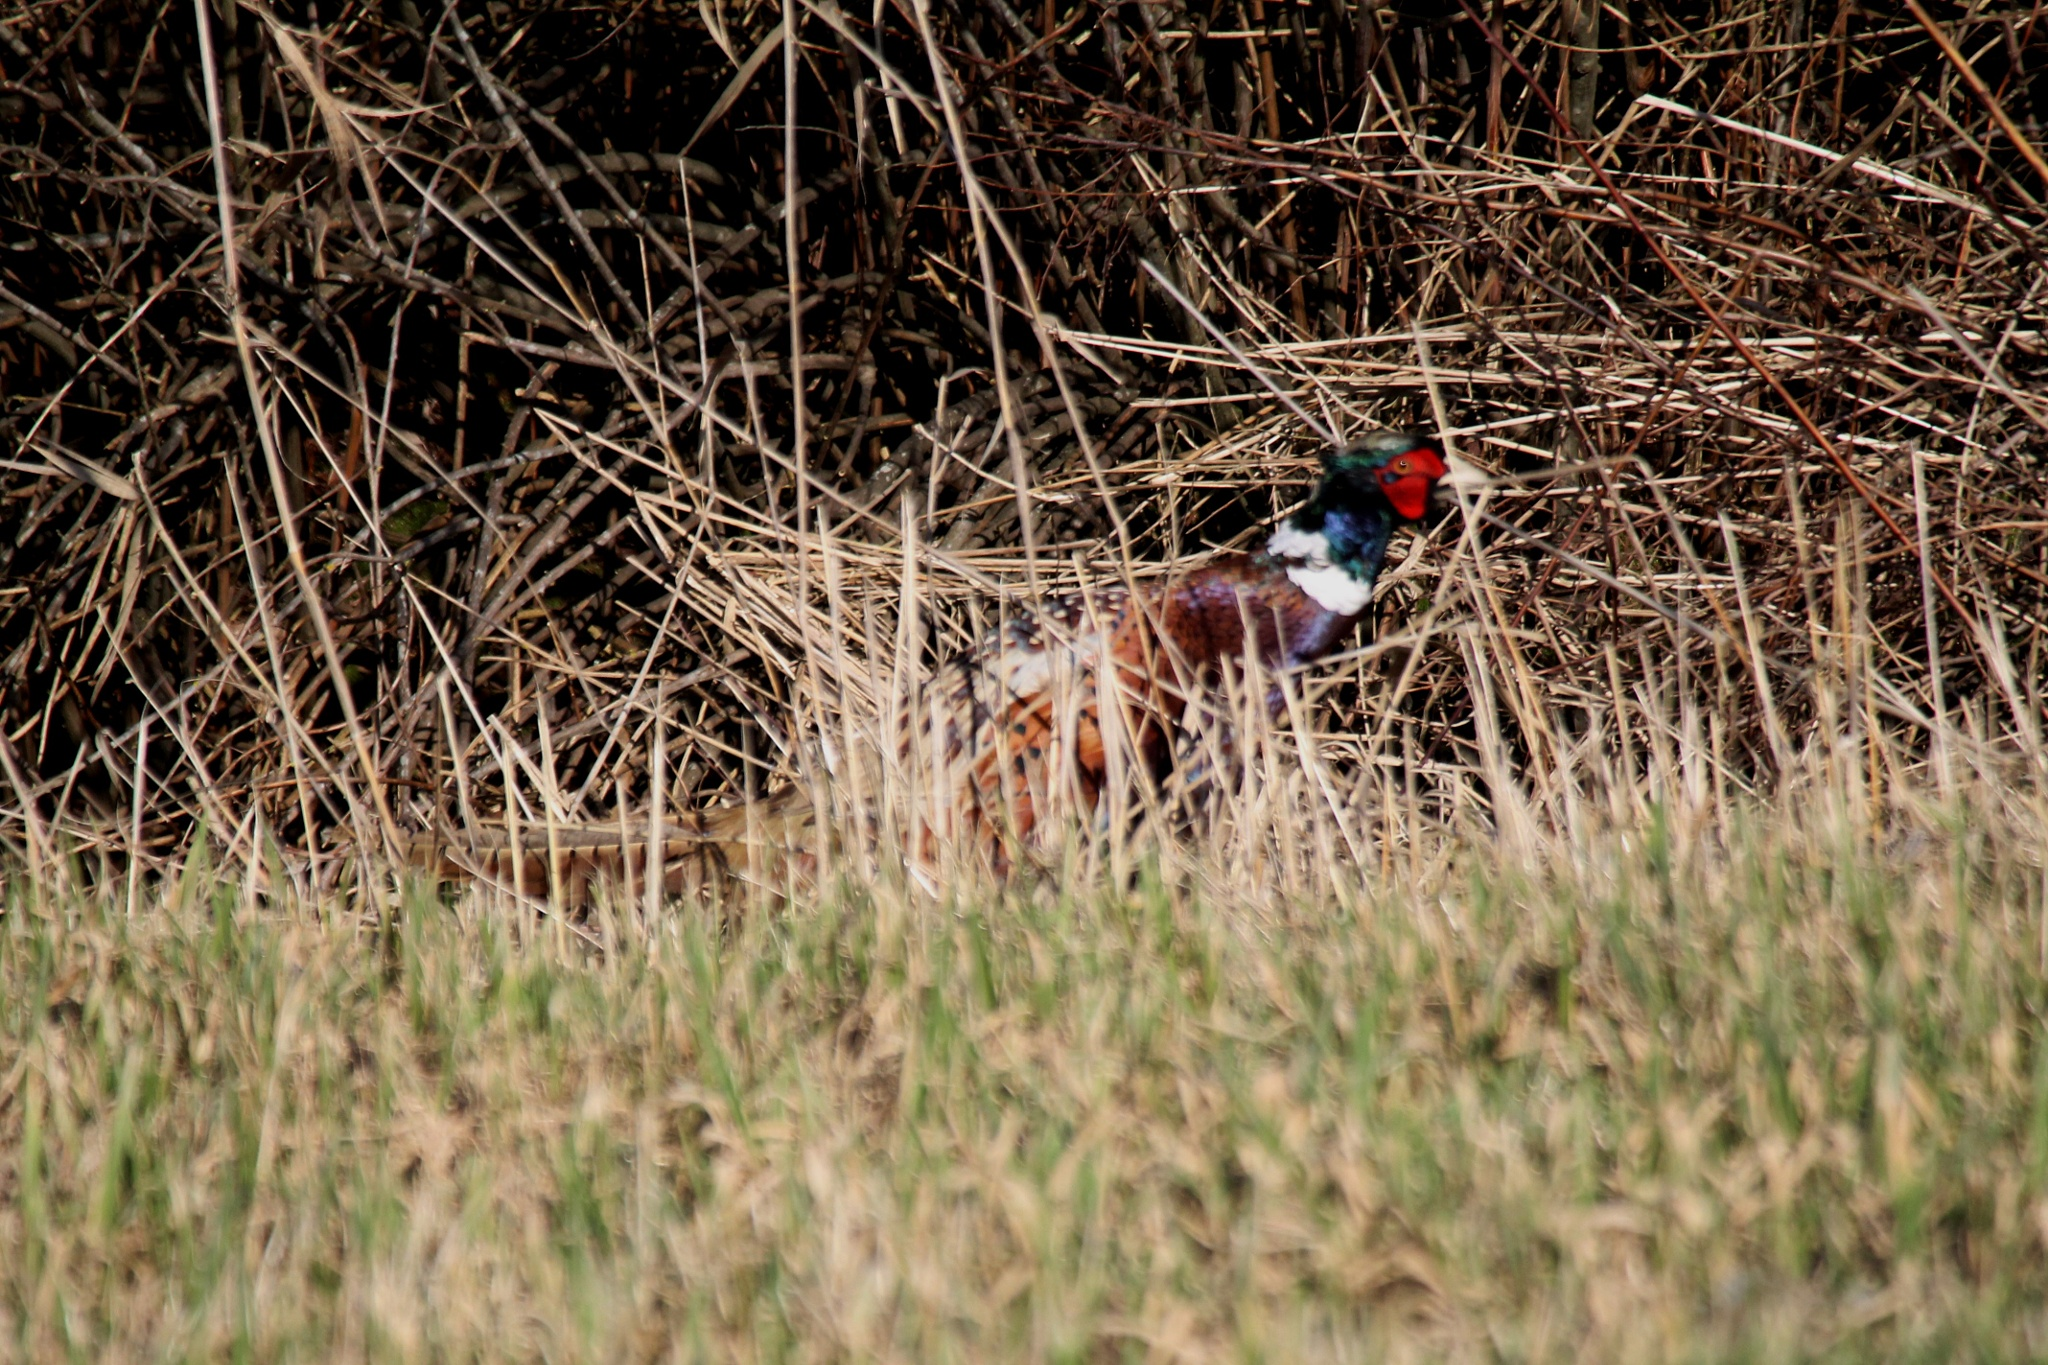 Pheasant by henrywall63